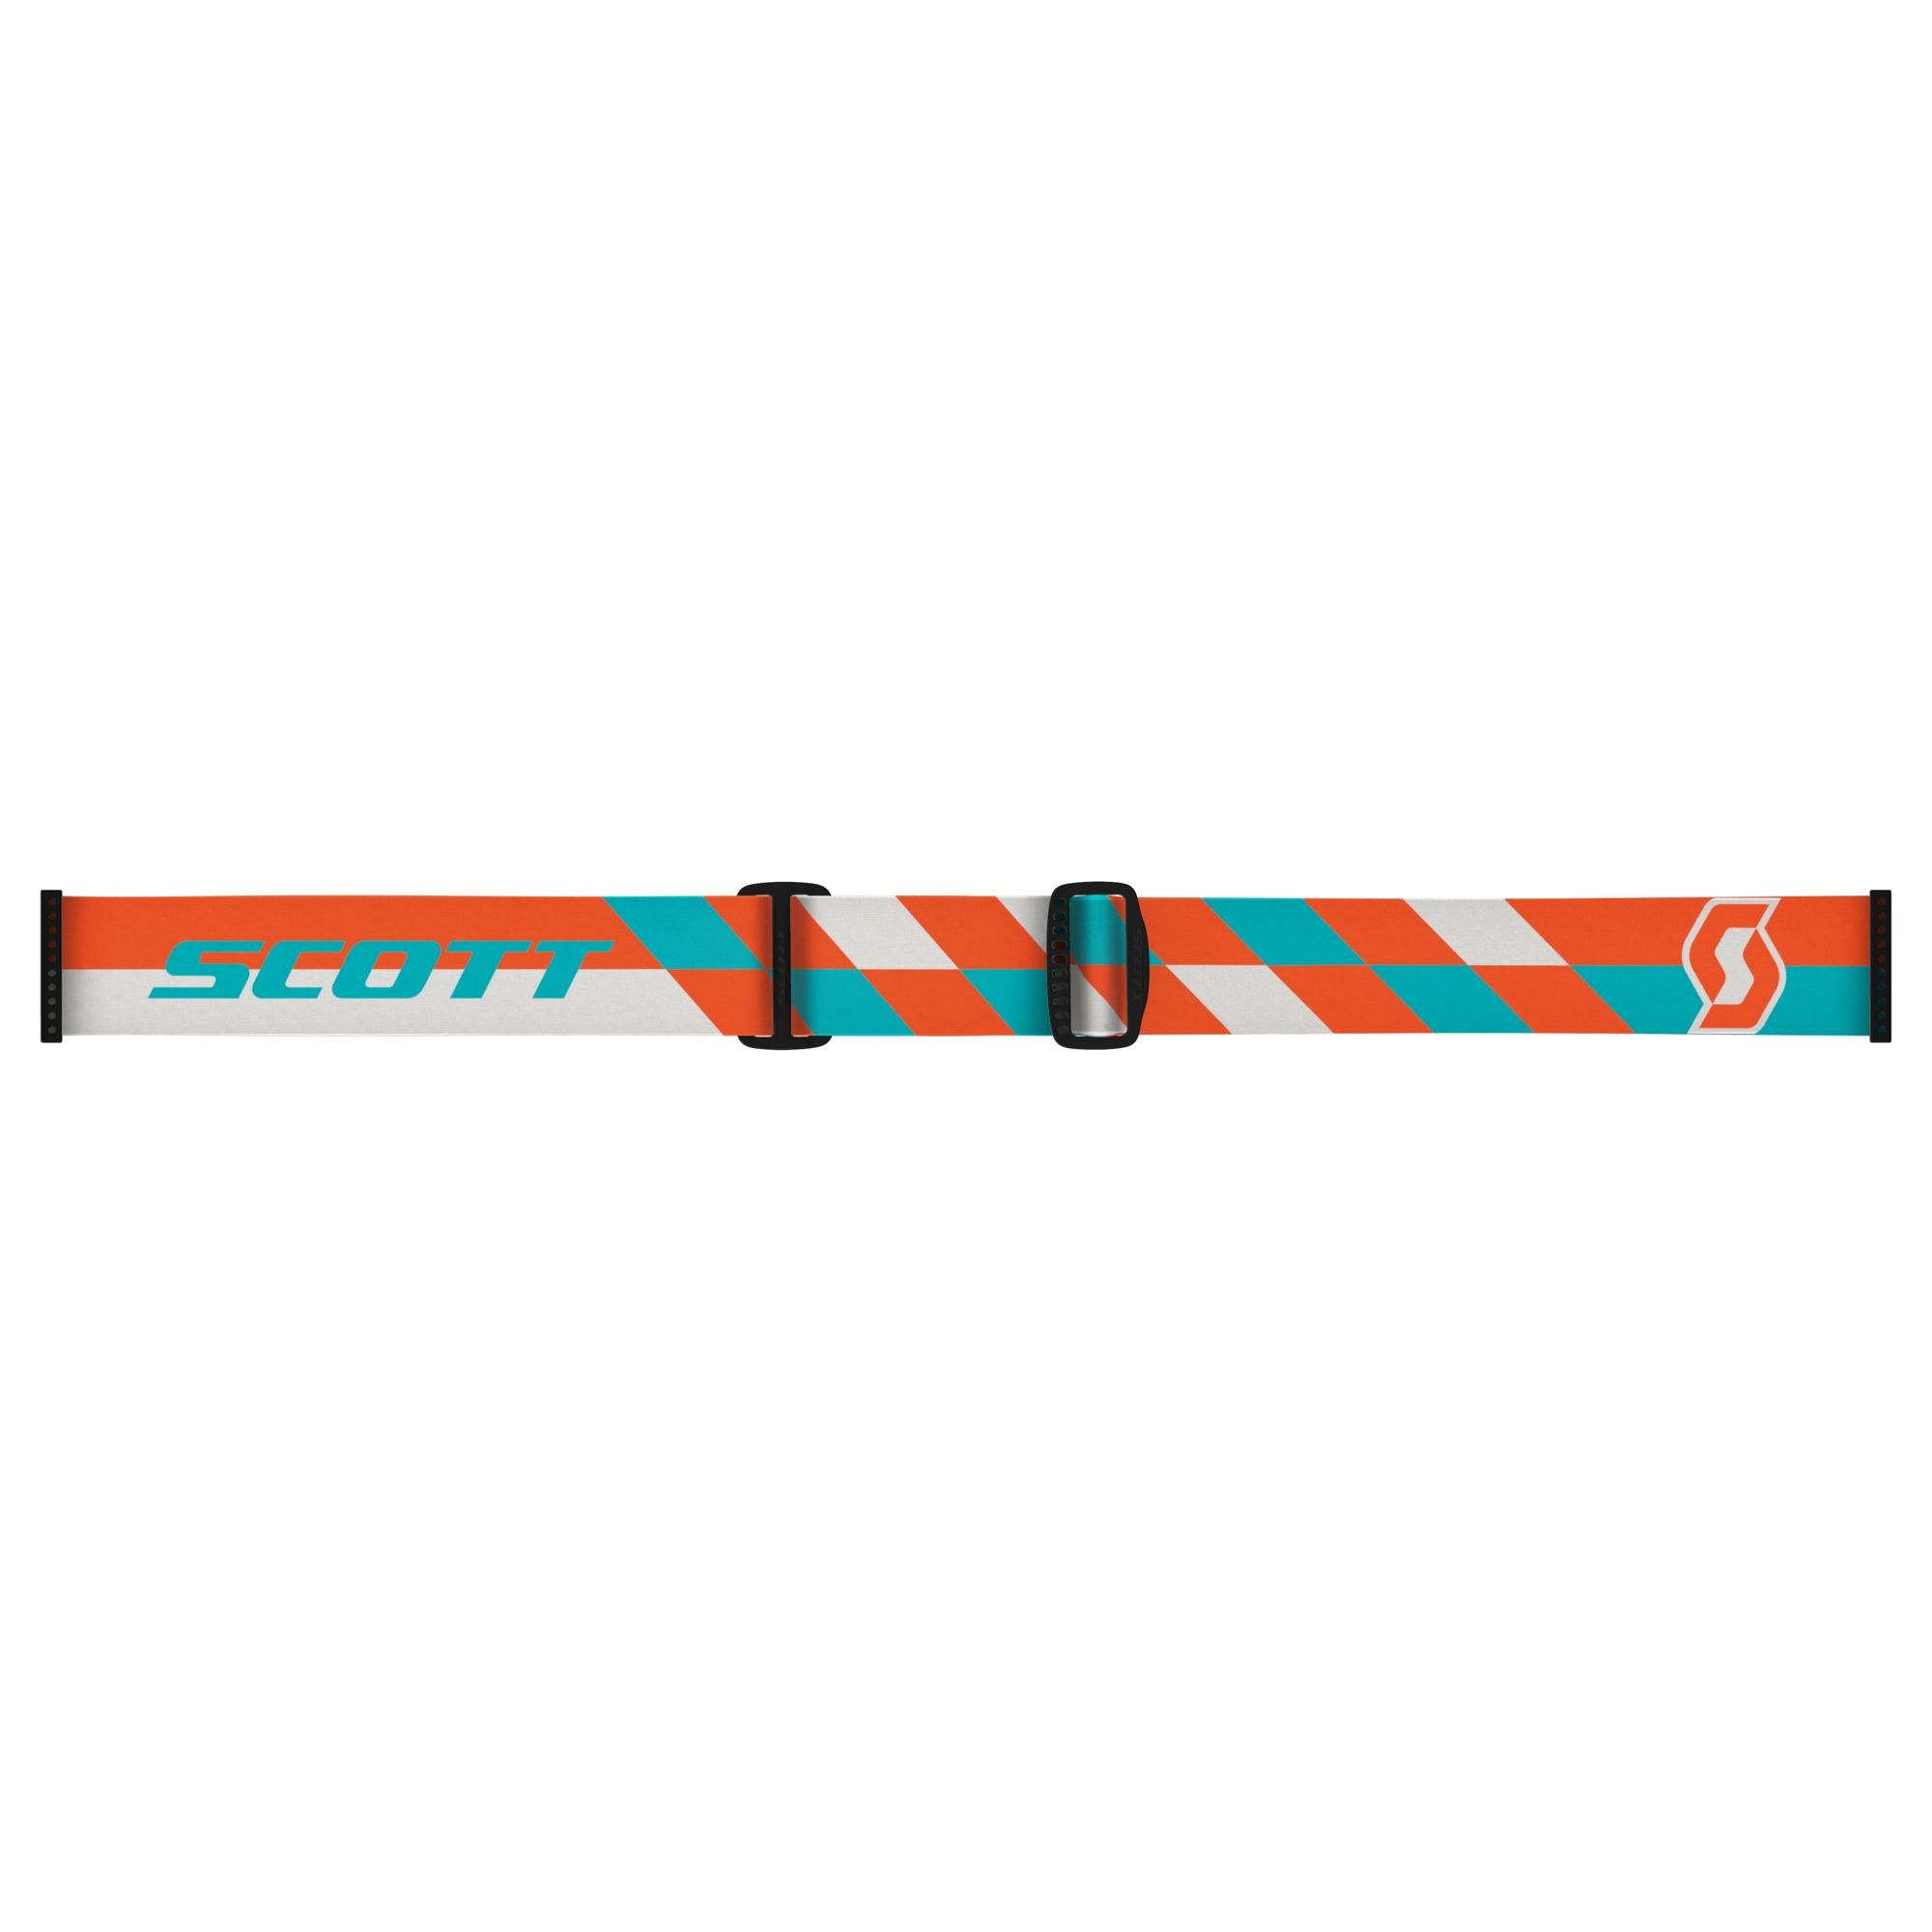 Scott Oxide Hustle MX cross goggles Orange Turquoise